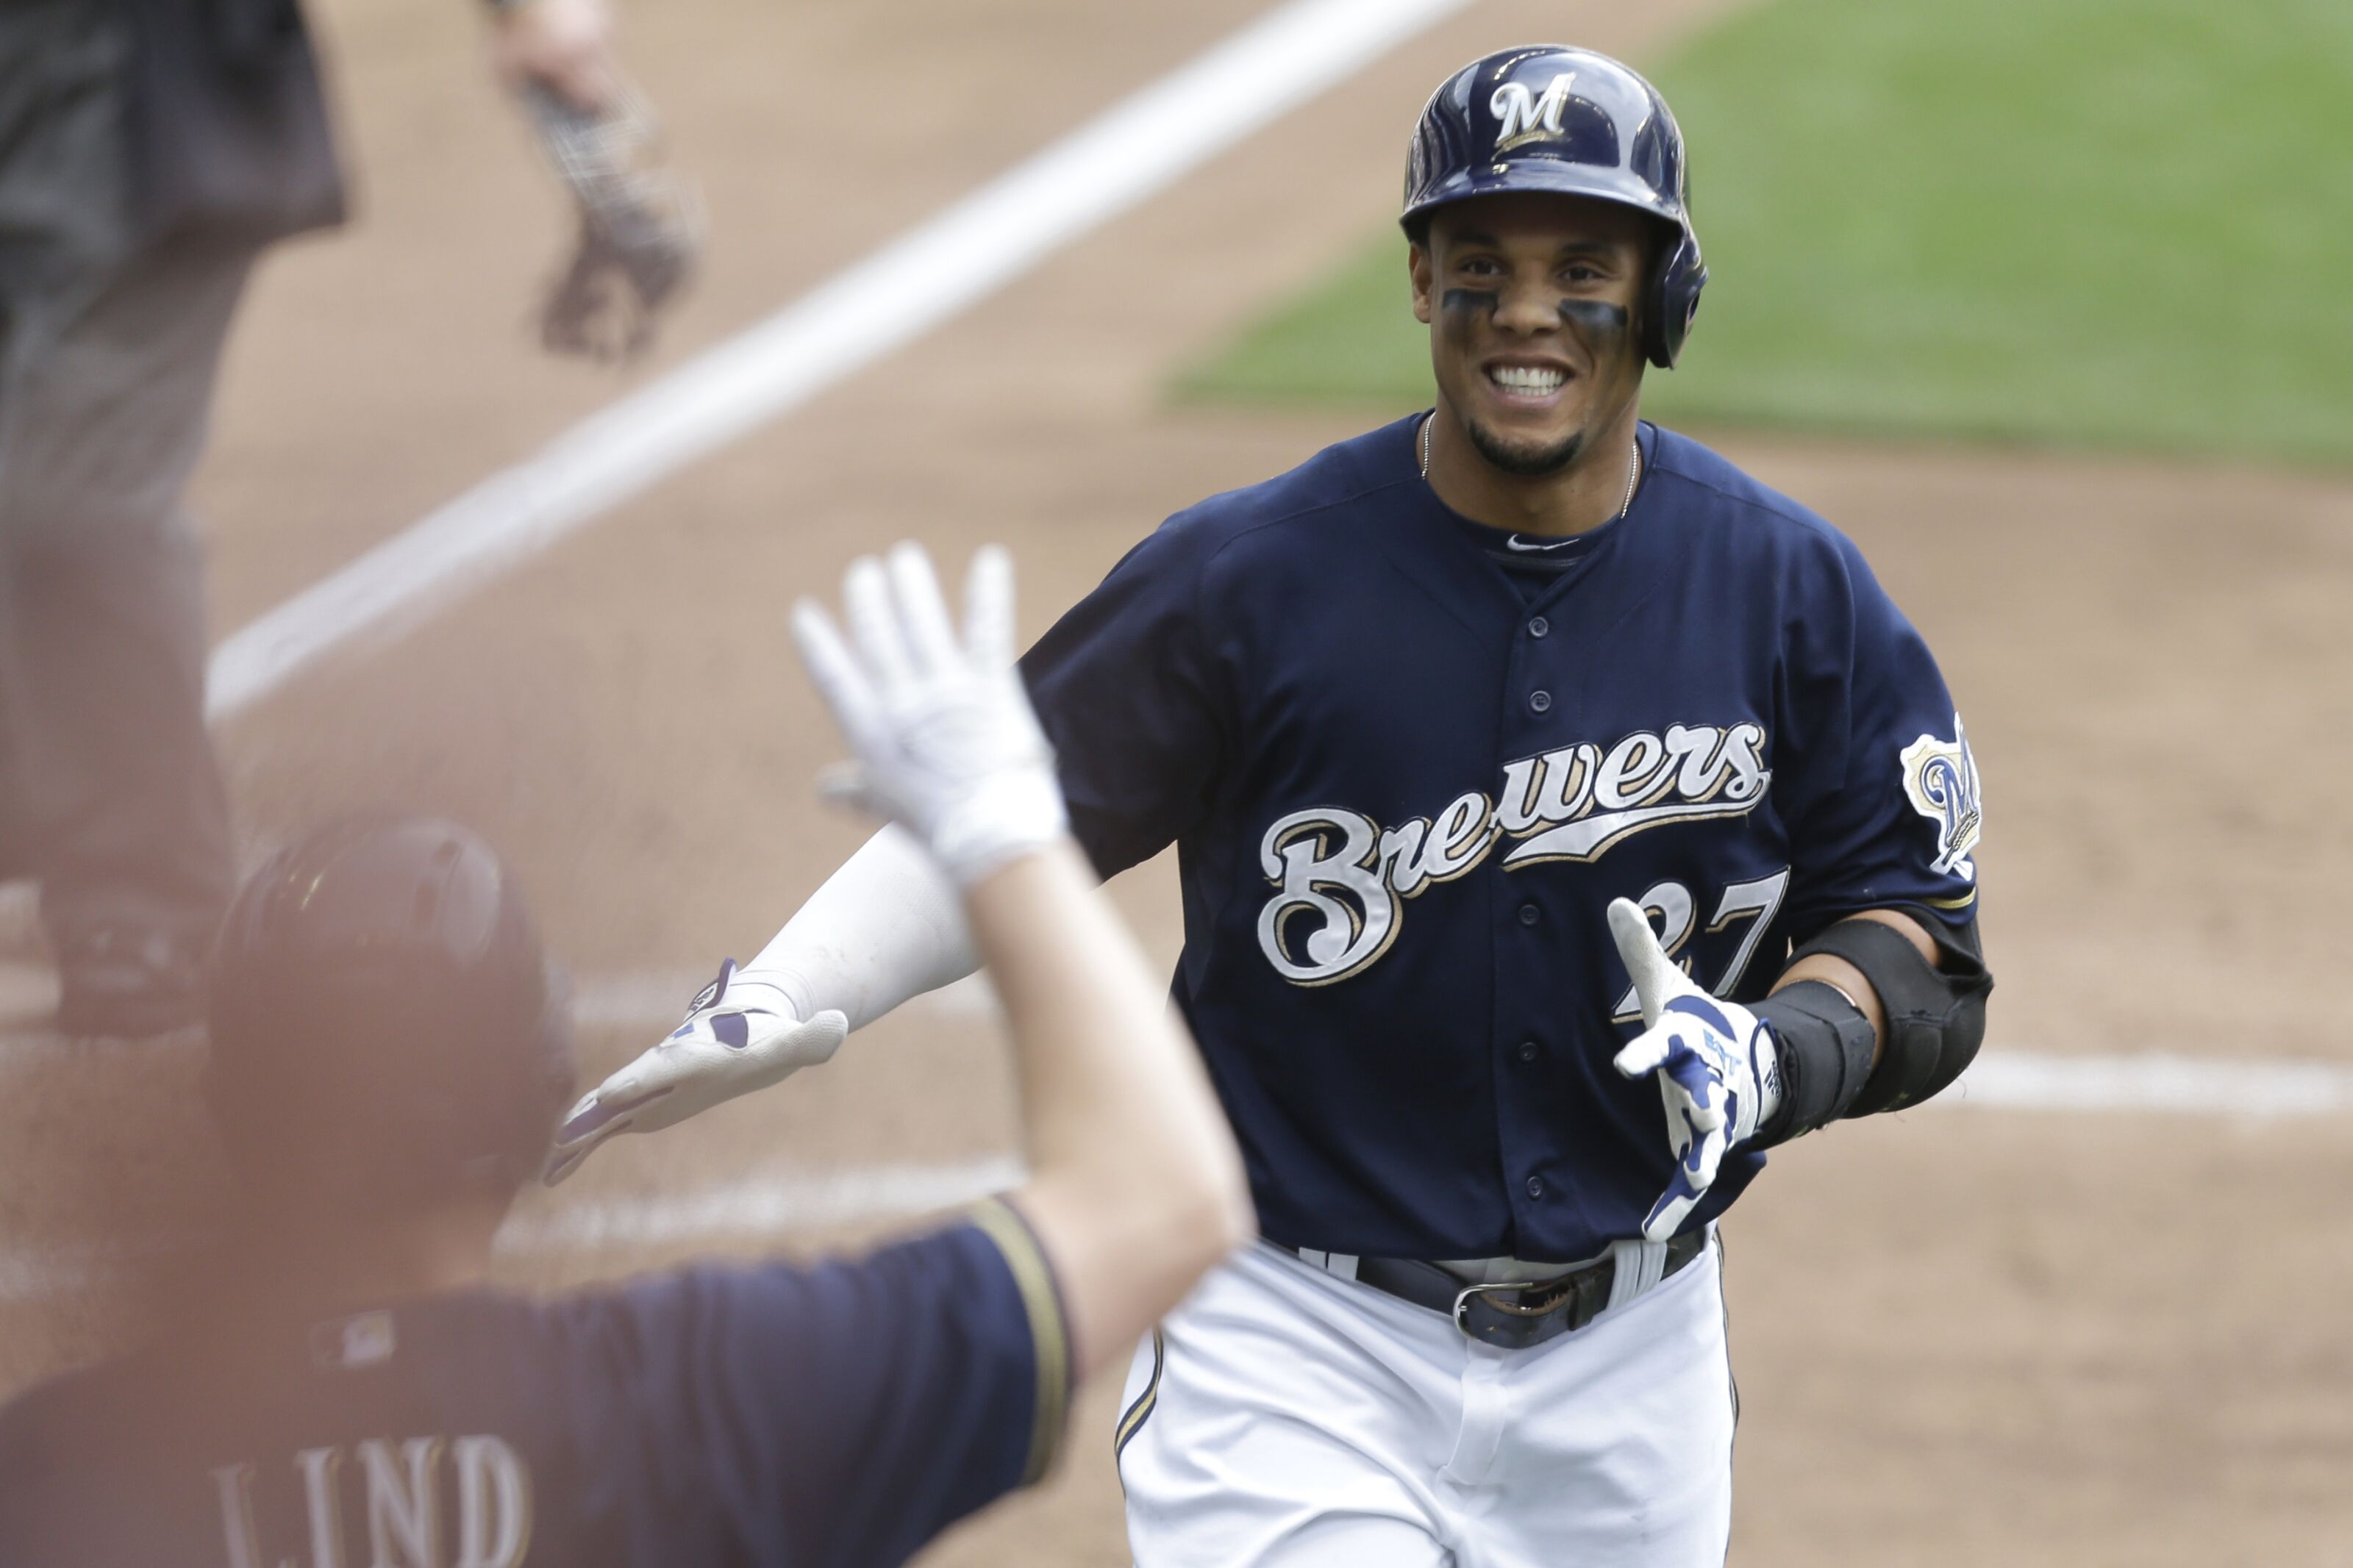 Brewers: Carlos Gomez To Reportedly Retire As A Brewer